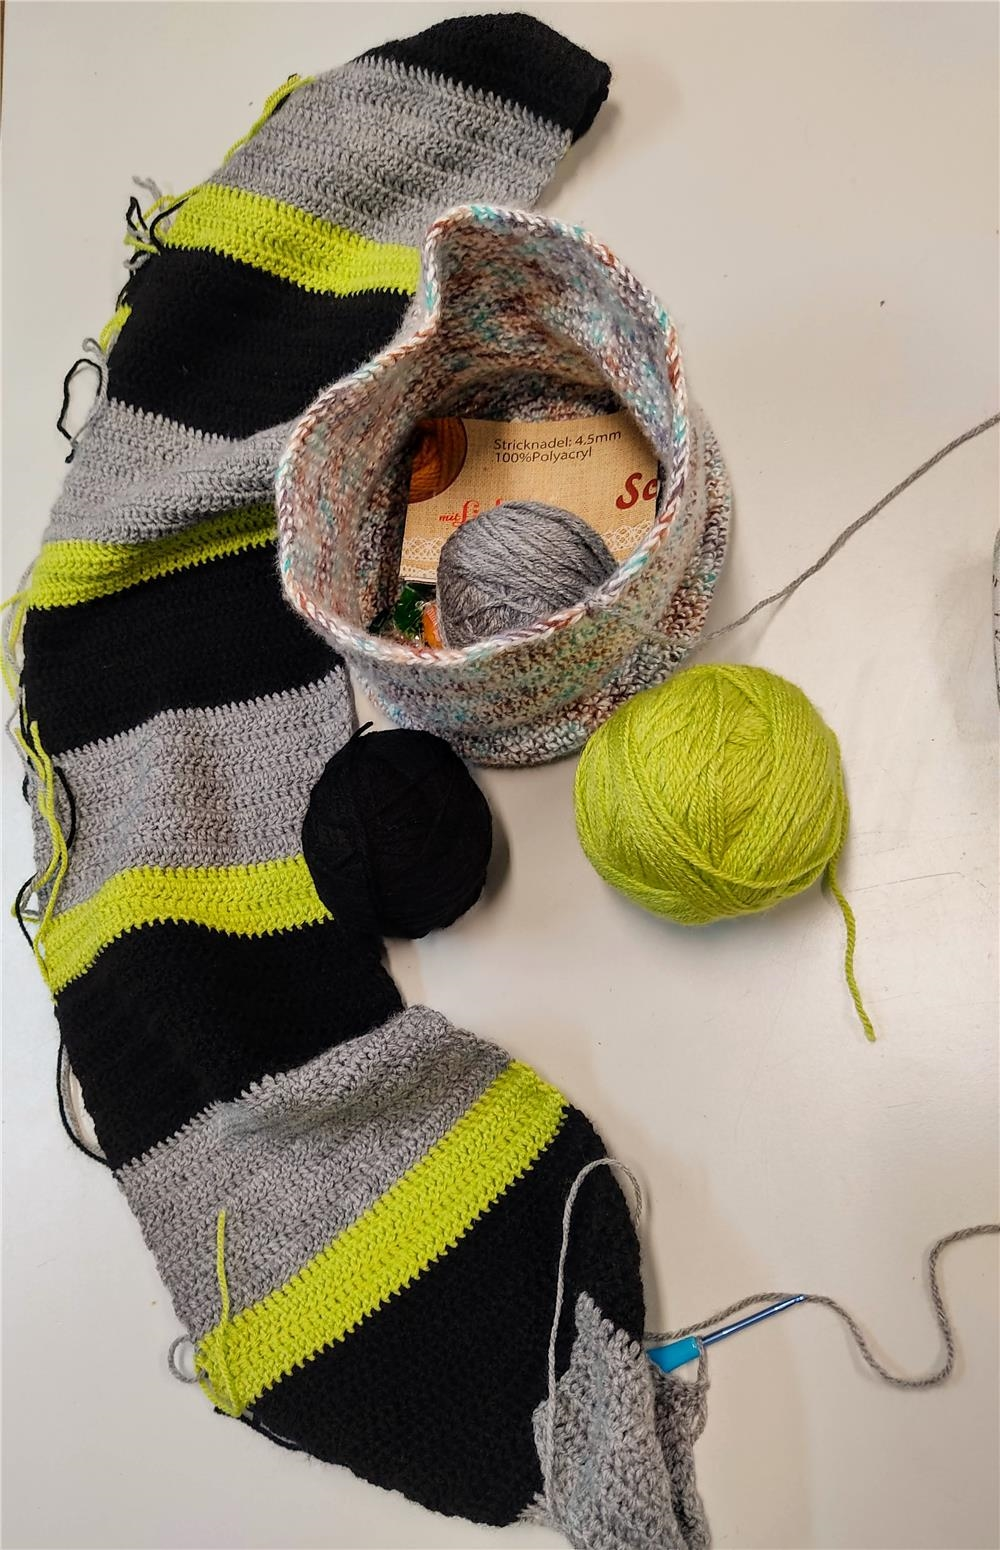 ein Strickschal nimmt Gestalt an in der Kreativwerkstatt (© Caritasverband Worms e. V.)